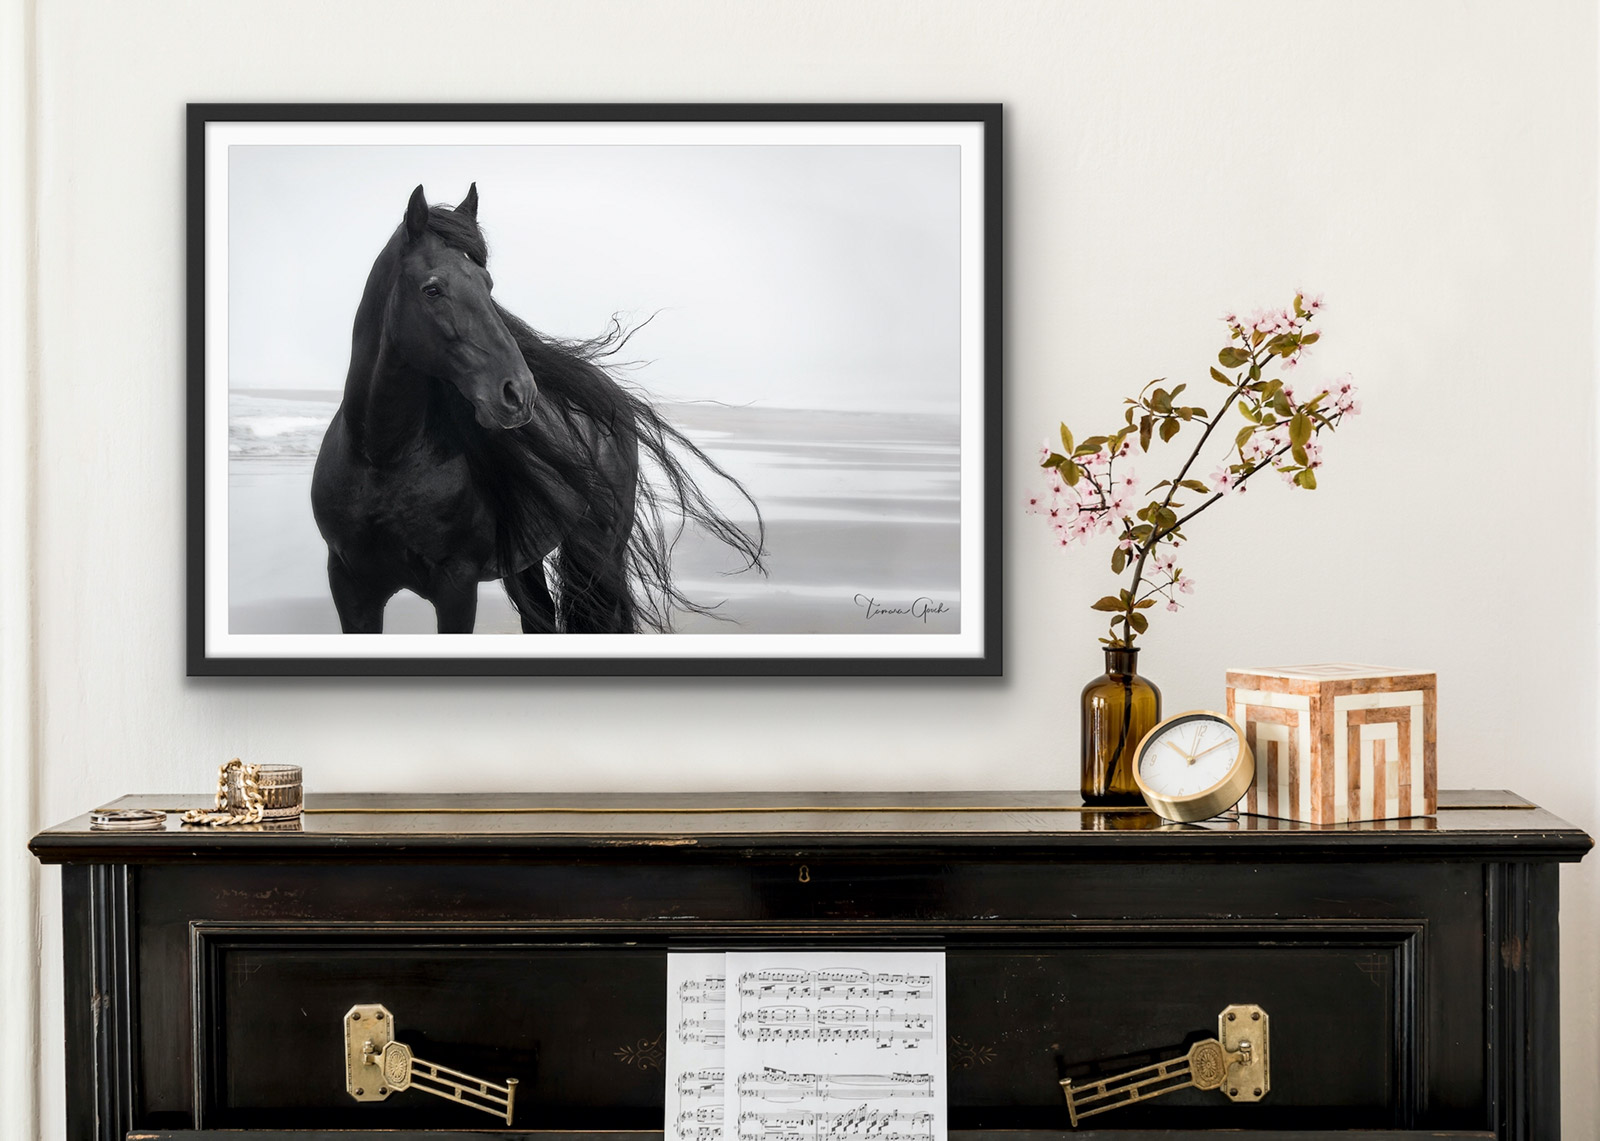 A fine art equine photograph framed hanging over a hall table